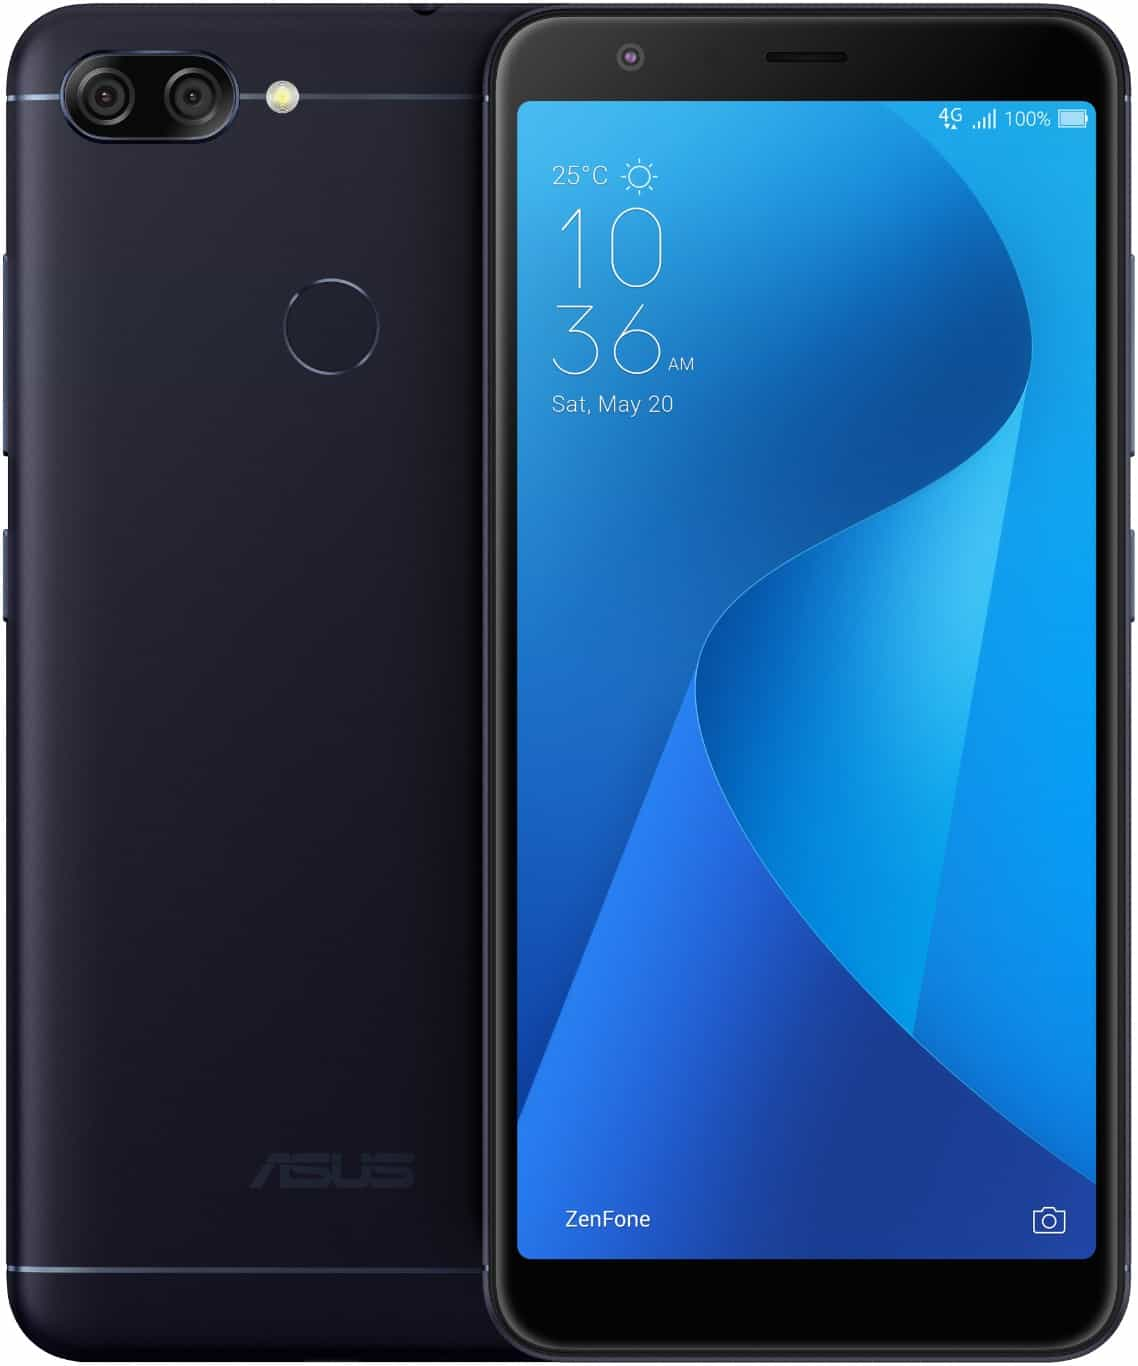 ASUS ZenFone Max Plus M1 official image 10